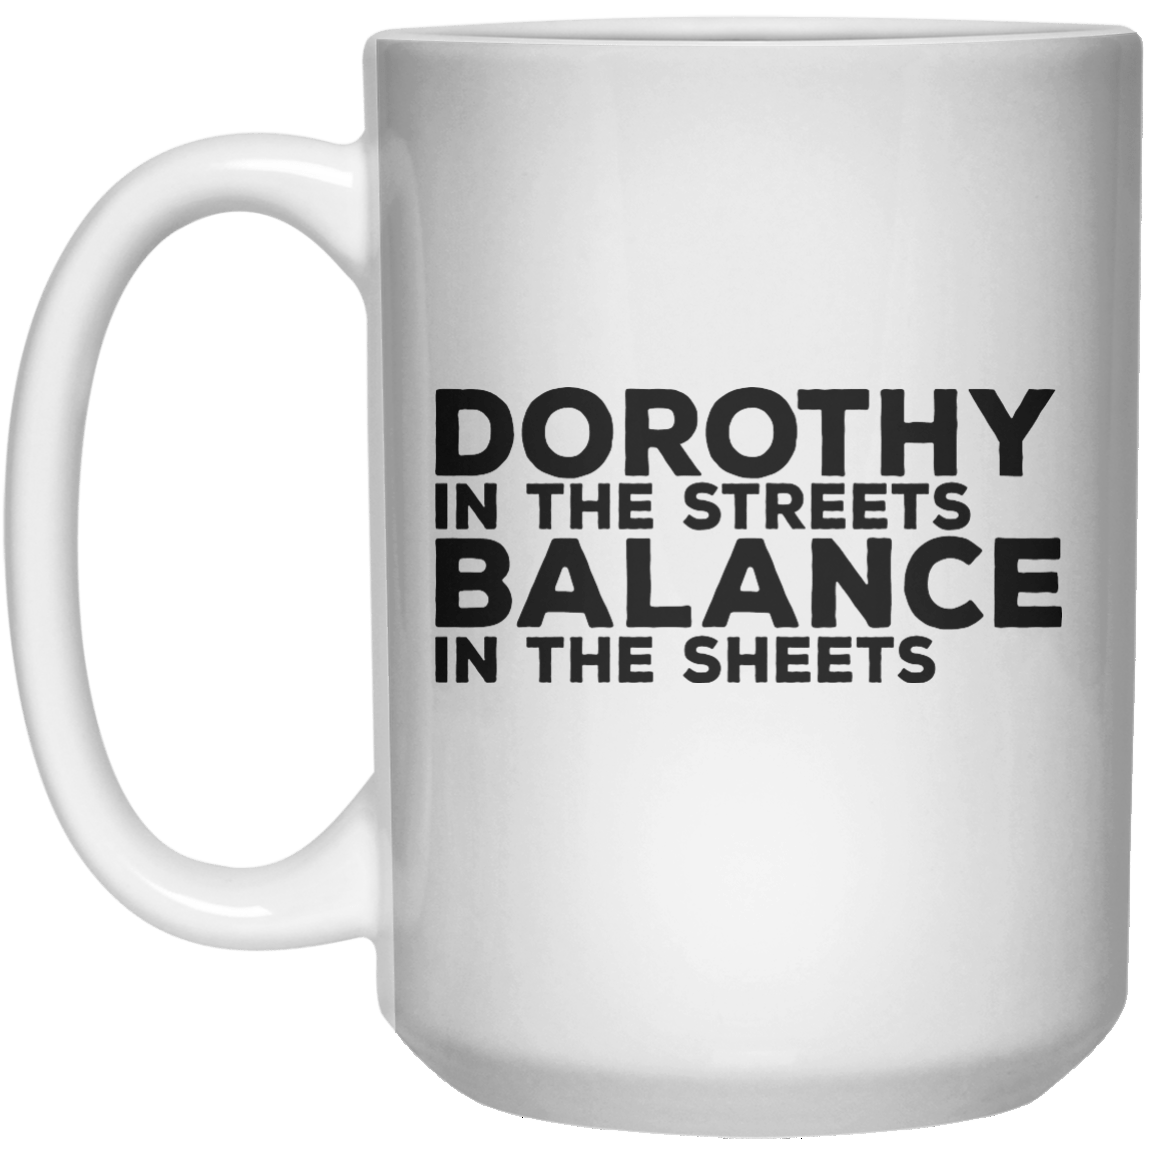 Dorothy In The Streets Balance In The Sheets MUG  Mug - 15oz - Shirtoopia